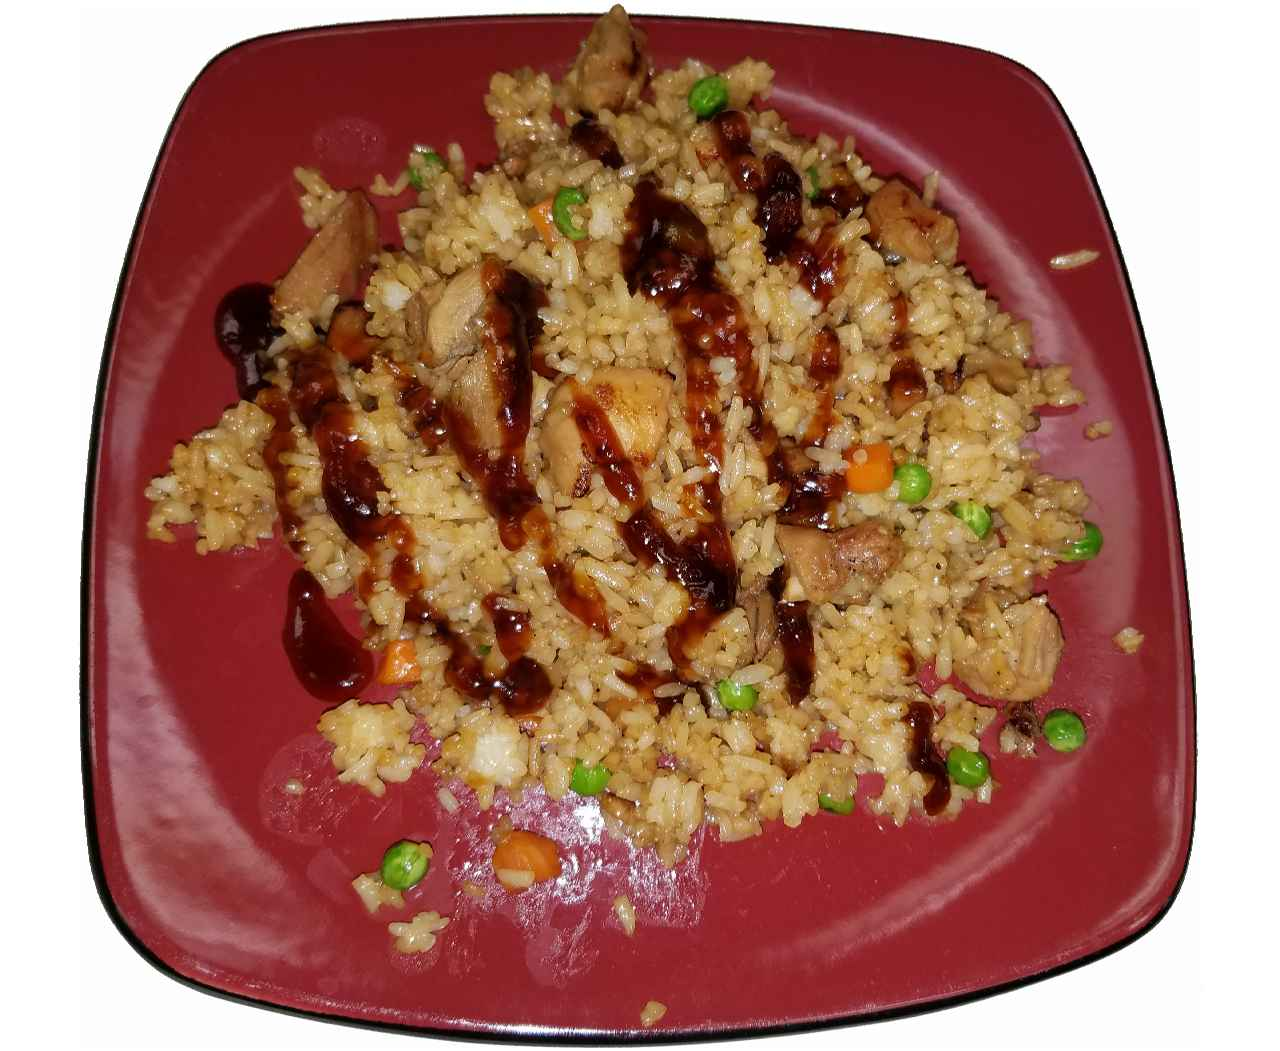 43. Kids Chicken Fried Rice